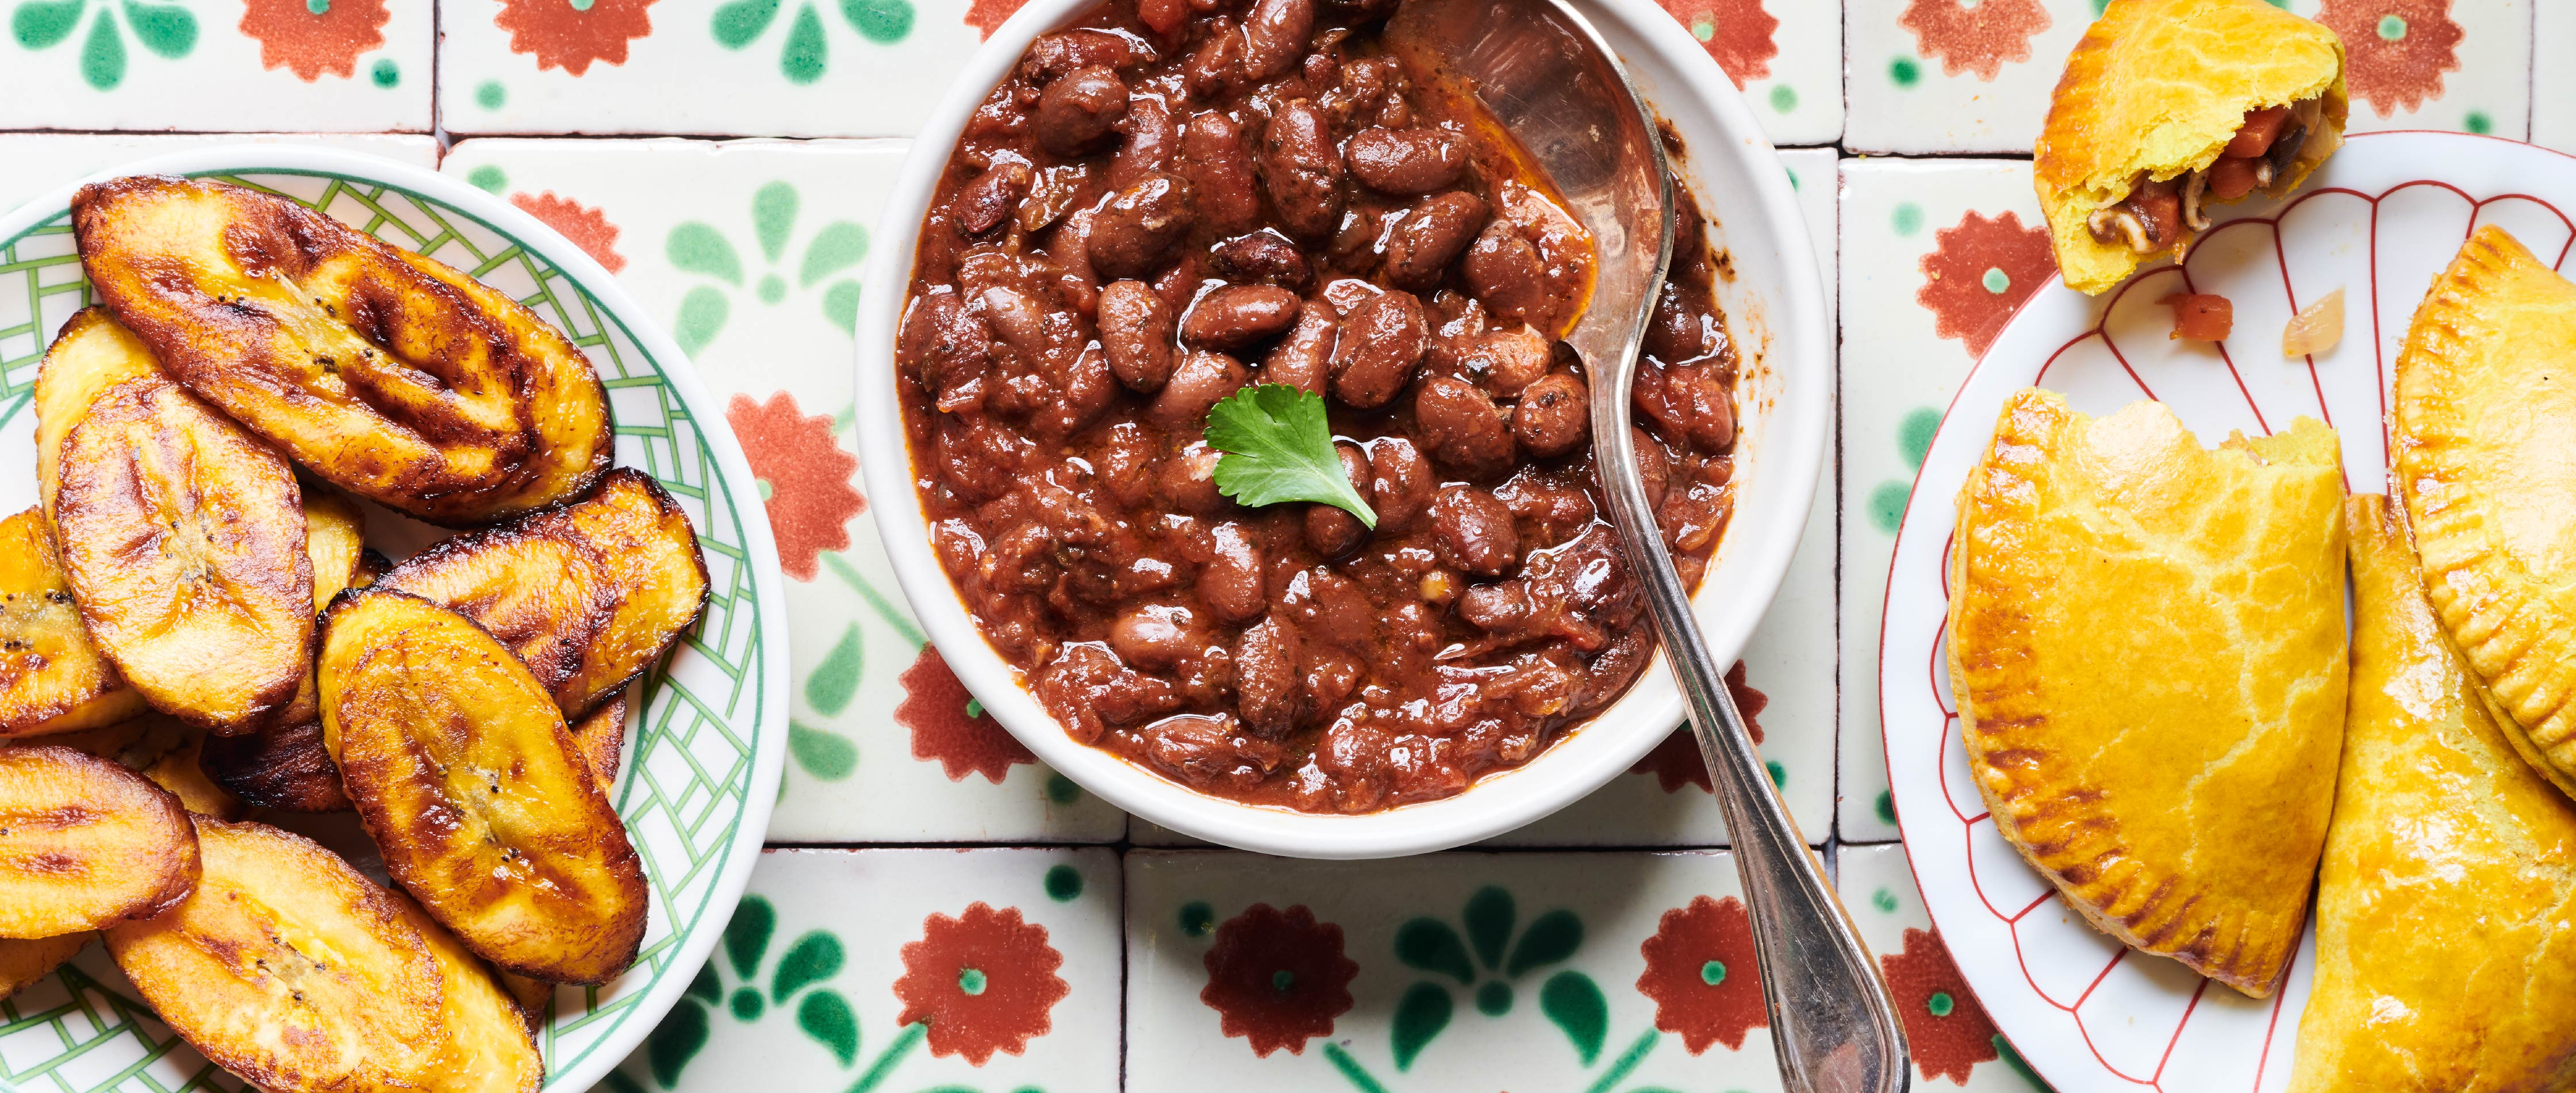 Food photography of a table spread of Caribbean dishes featuing the Cuban Black Beans for A Dozen cousins' Brand